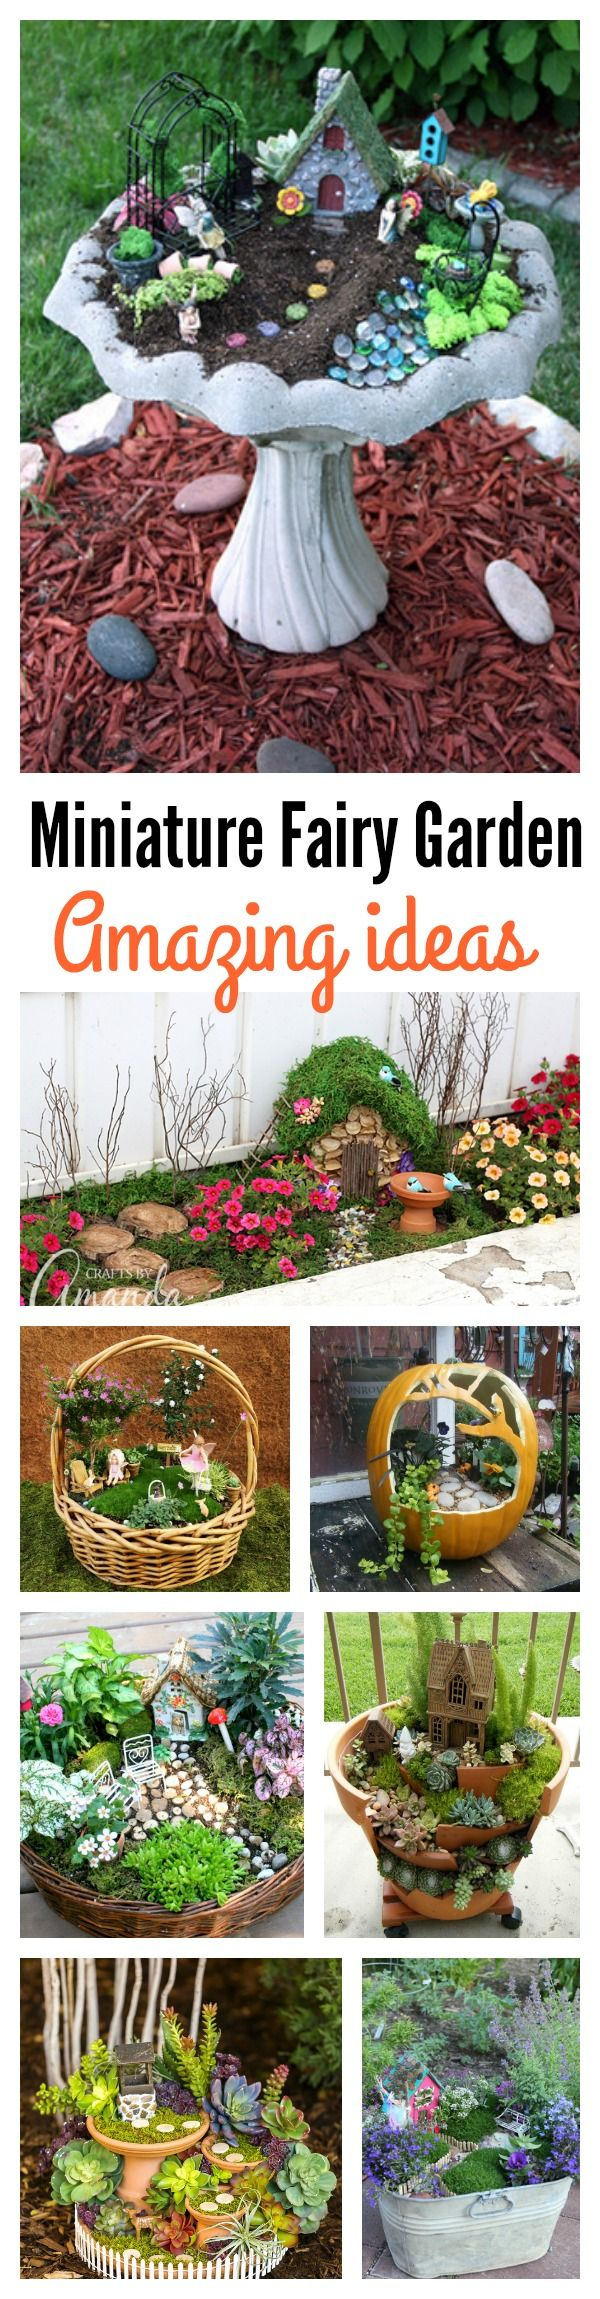 Fairy Gardens Ideas great for outdoor garden sales and bazaars 8 Amazing Miniature Fairy Garden Diy Ideas